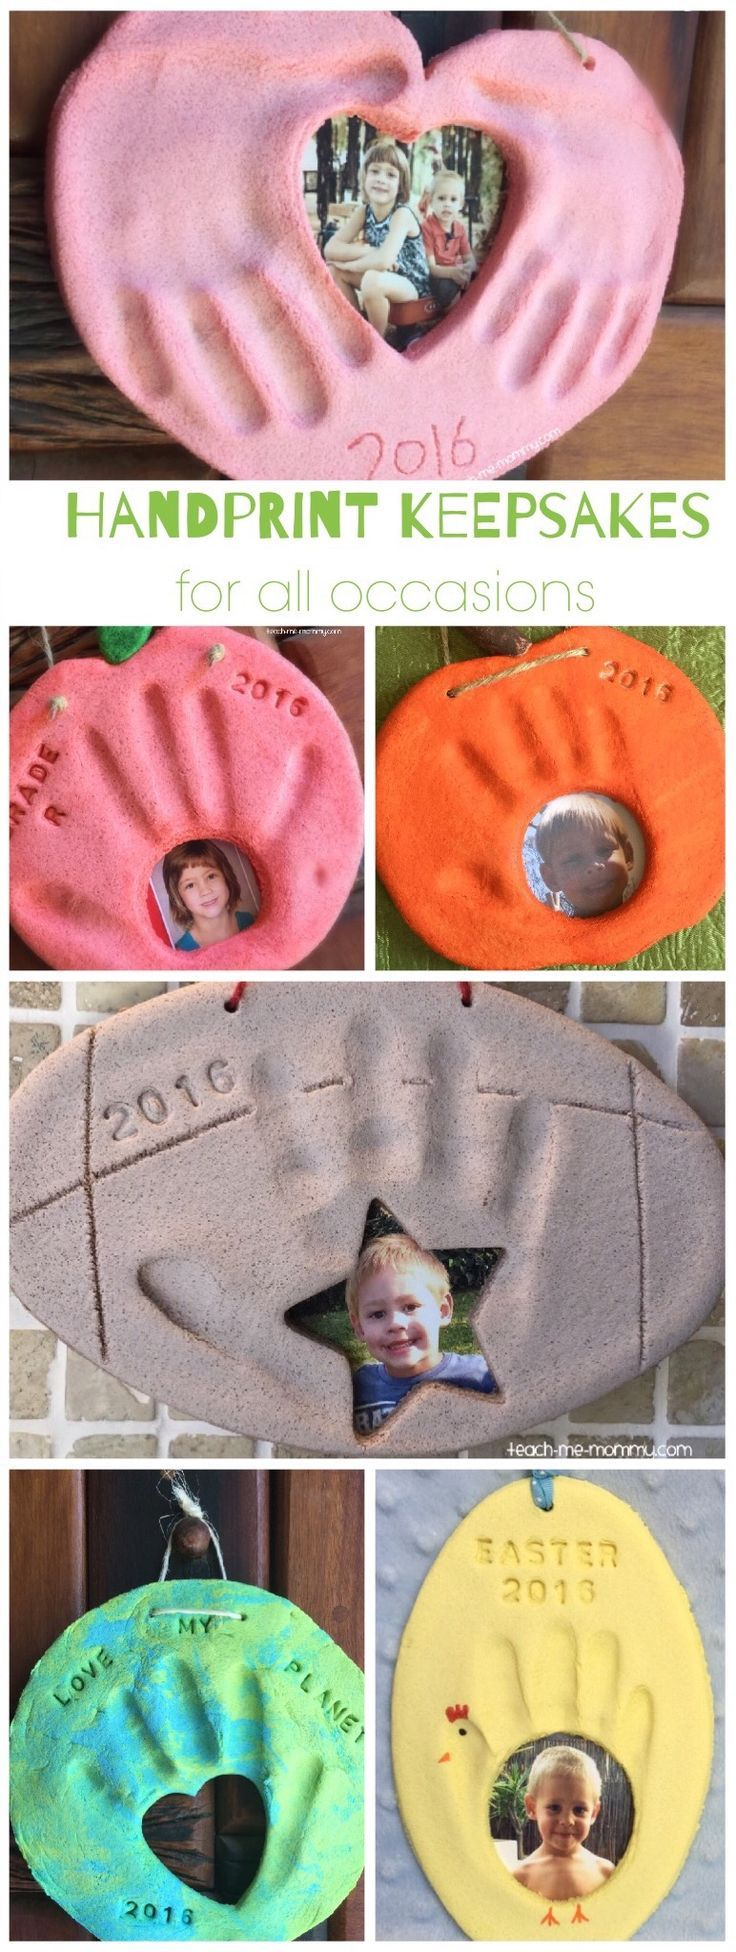 Handprint Keepsakes for all Occasions